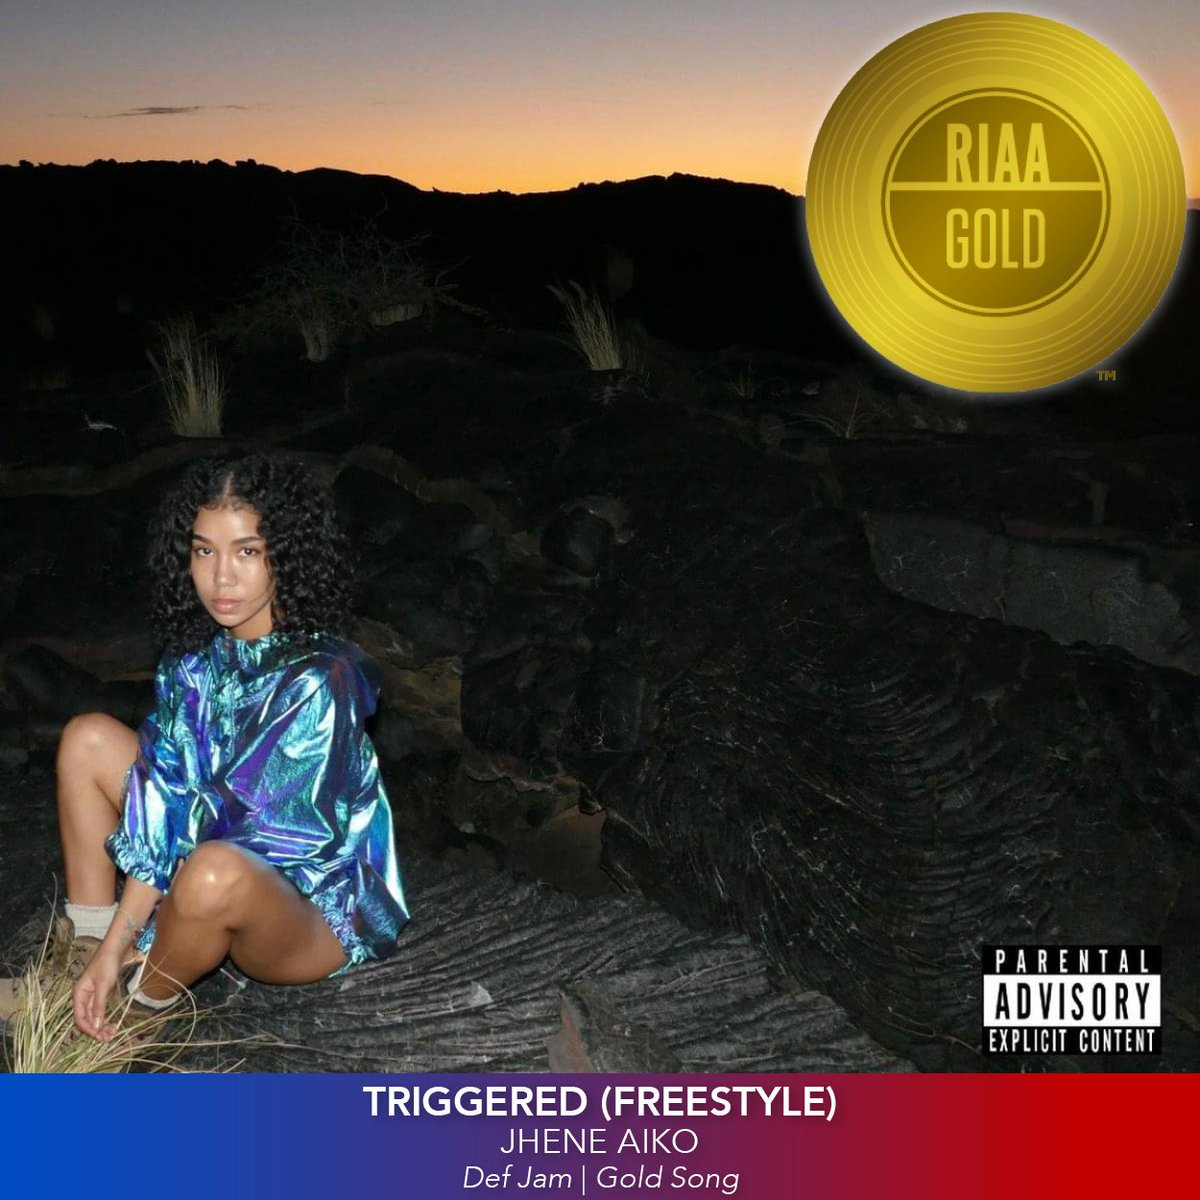 New RIAA Gold Single Awards for @halsey, @JheneAiko, @MarenMorris, @lizzo and more! bit.ly/RIAAjuly2019